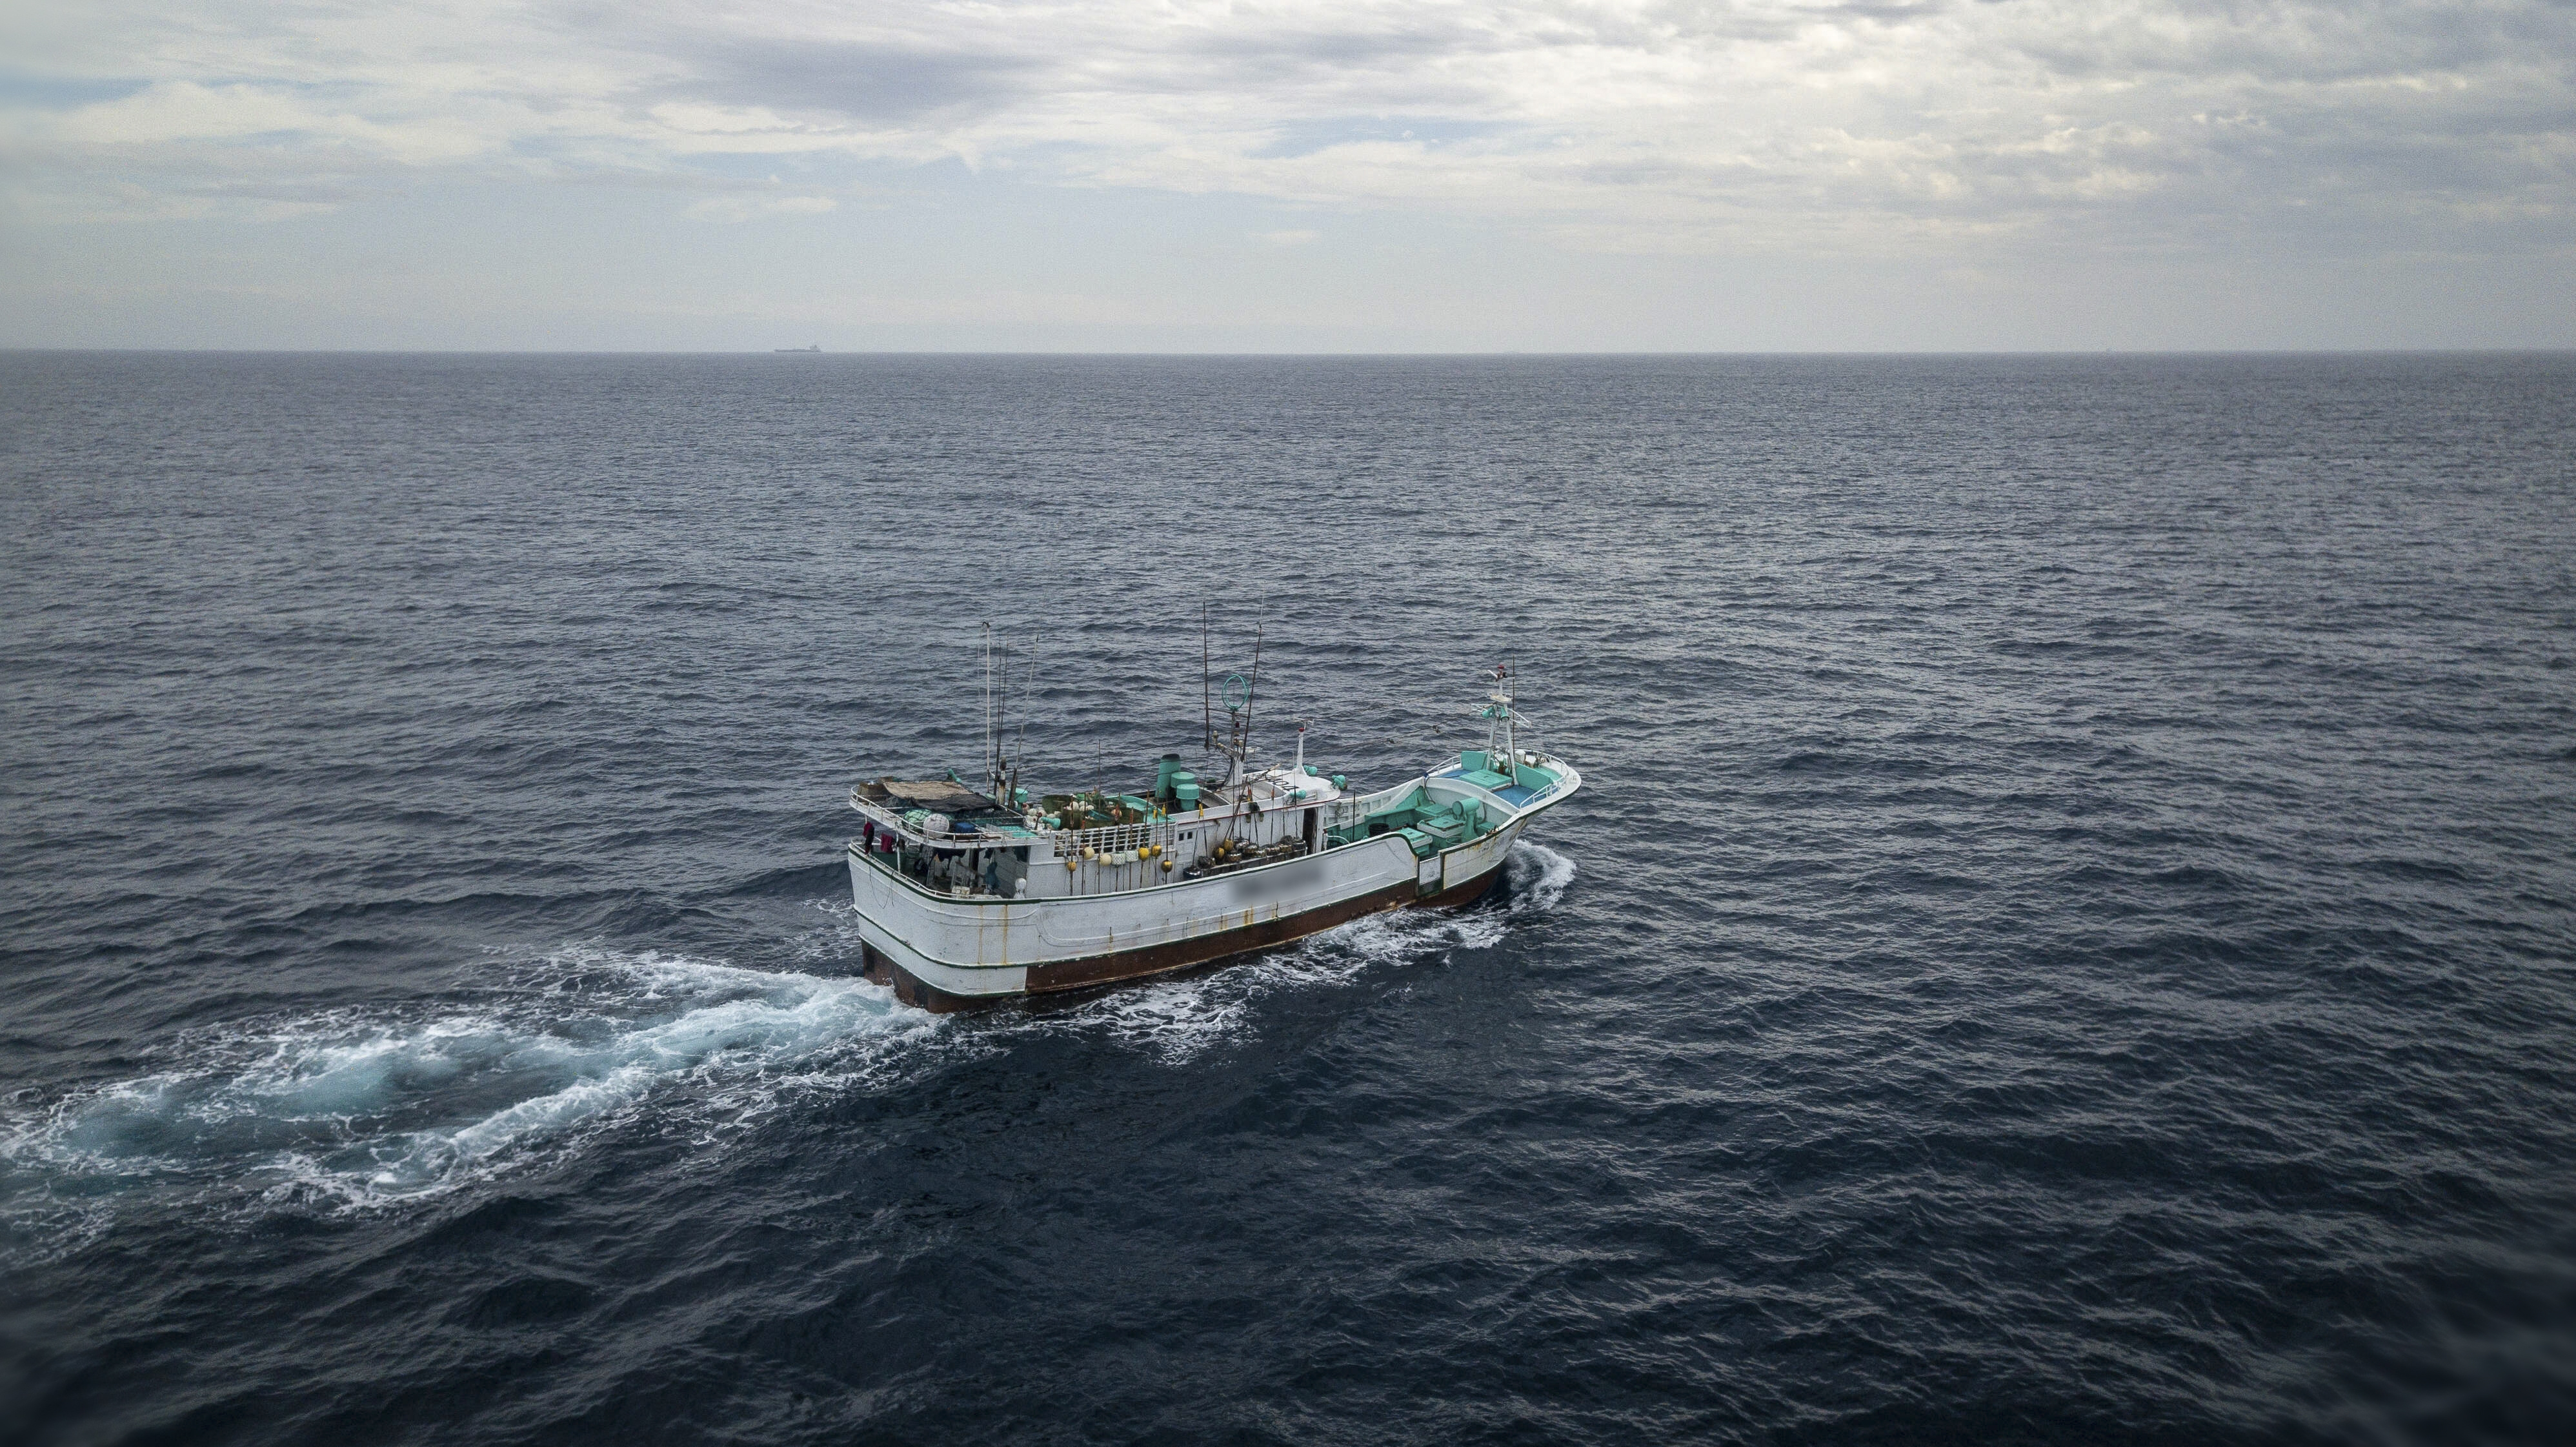 China and Taiwan named in US report against illegal fishing – EJF calls for greater transparency